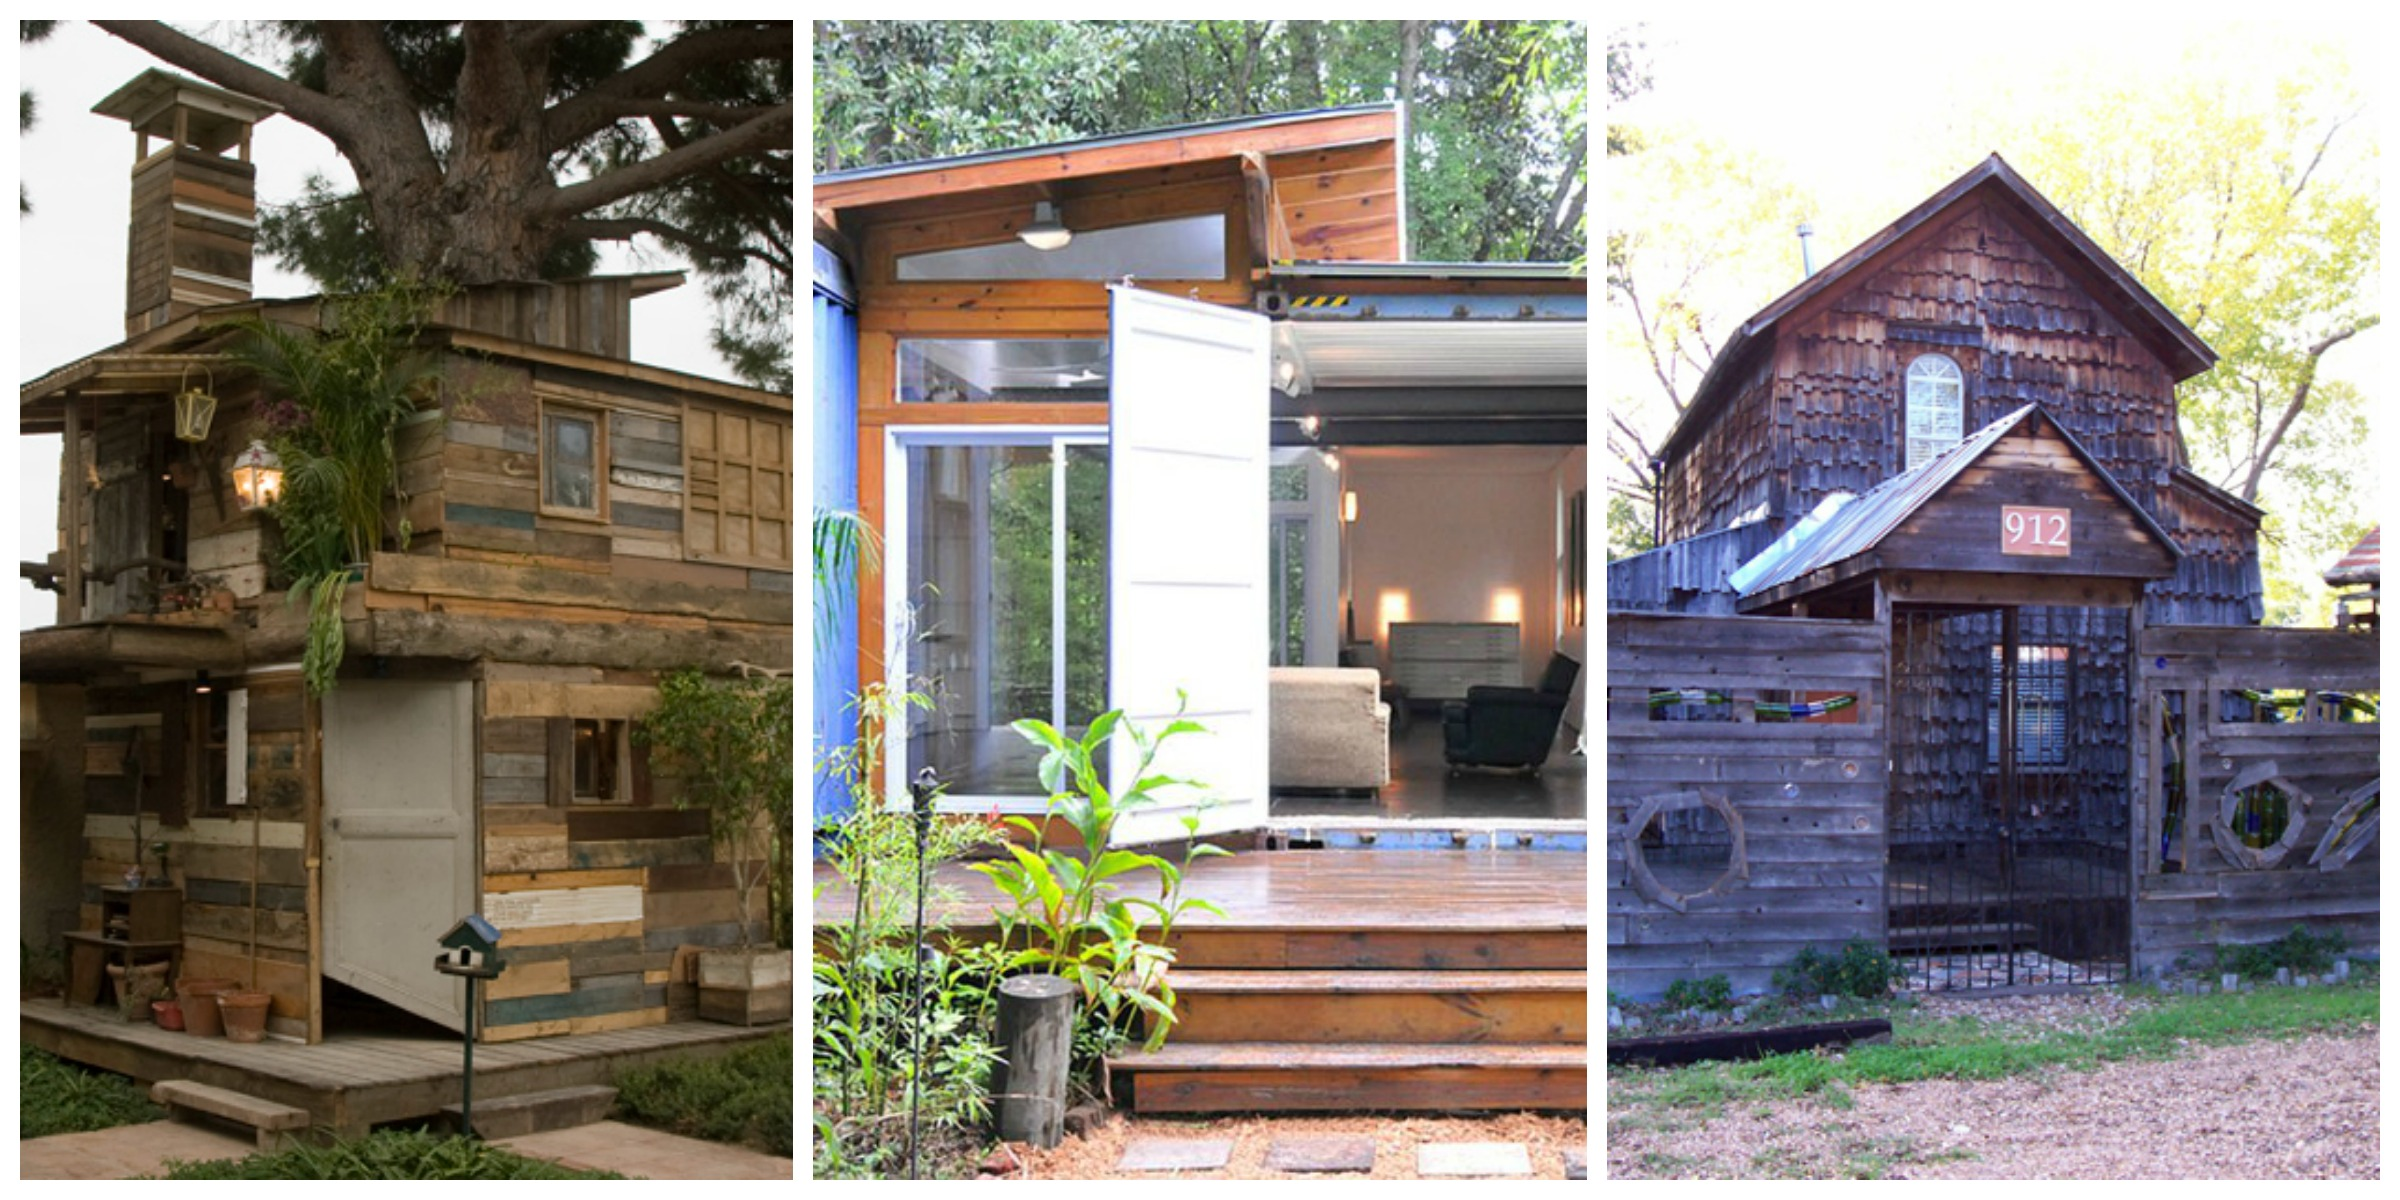 Houses Built With Recycled Materials : Houses made from trash sustainable homes built